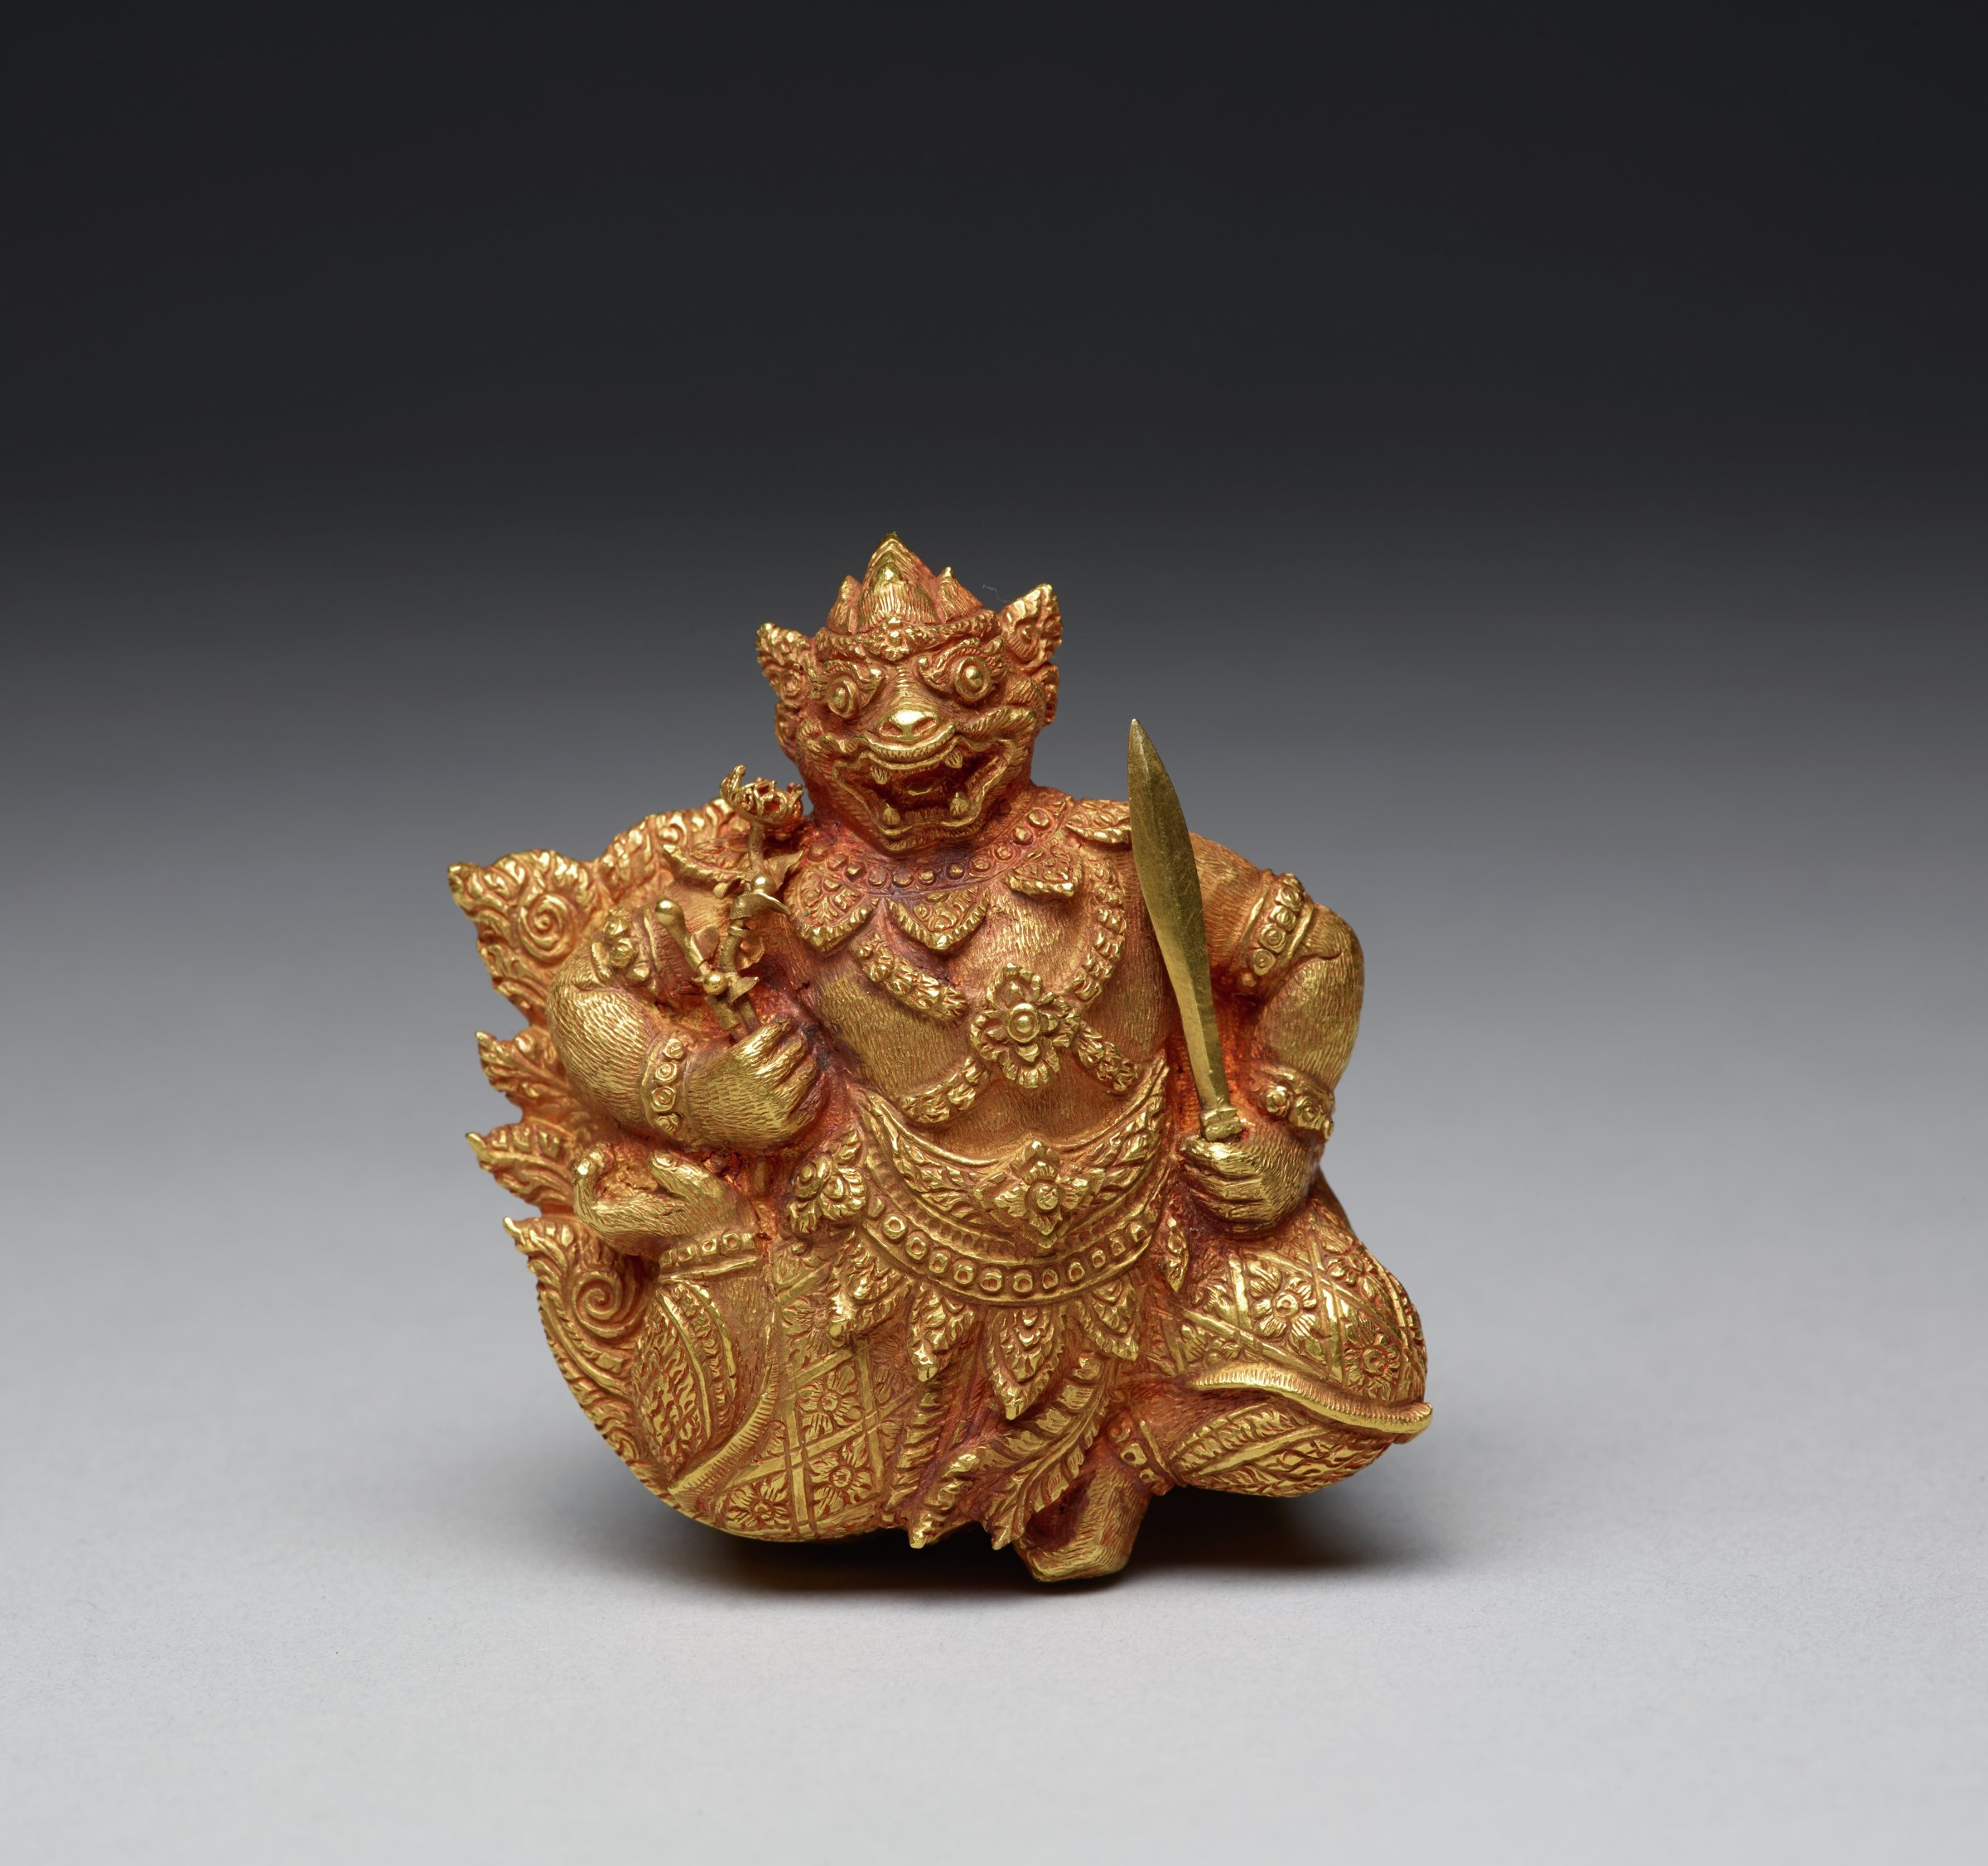 The posture of this figure, both legs bent one behind, the other underneath, signals this monkey is flying. He holds in his left hand a double-edged sword, while his right hand holds a flower. The flower may here represent the herbs required to heal Lakshman (Pra Lak) from a life-threatening wound. Hanuman is only the lid of this exquisite box. The sides of the box are lavishly decorated with birds, crabs, lobsters, mollusks, fish, birds, and diverse plants, suggesting his long journey and ability to fly over land and swim in water. This box might have been employed for luxury ingredients for a betel chewing gift exchange for honored guests.